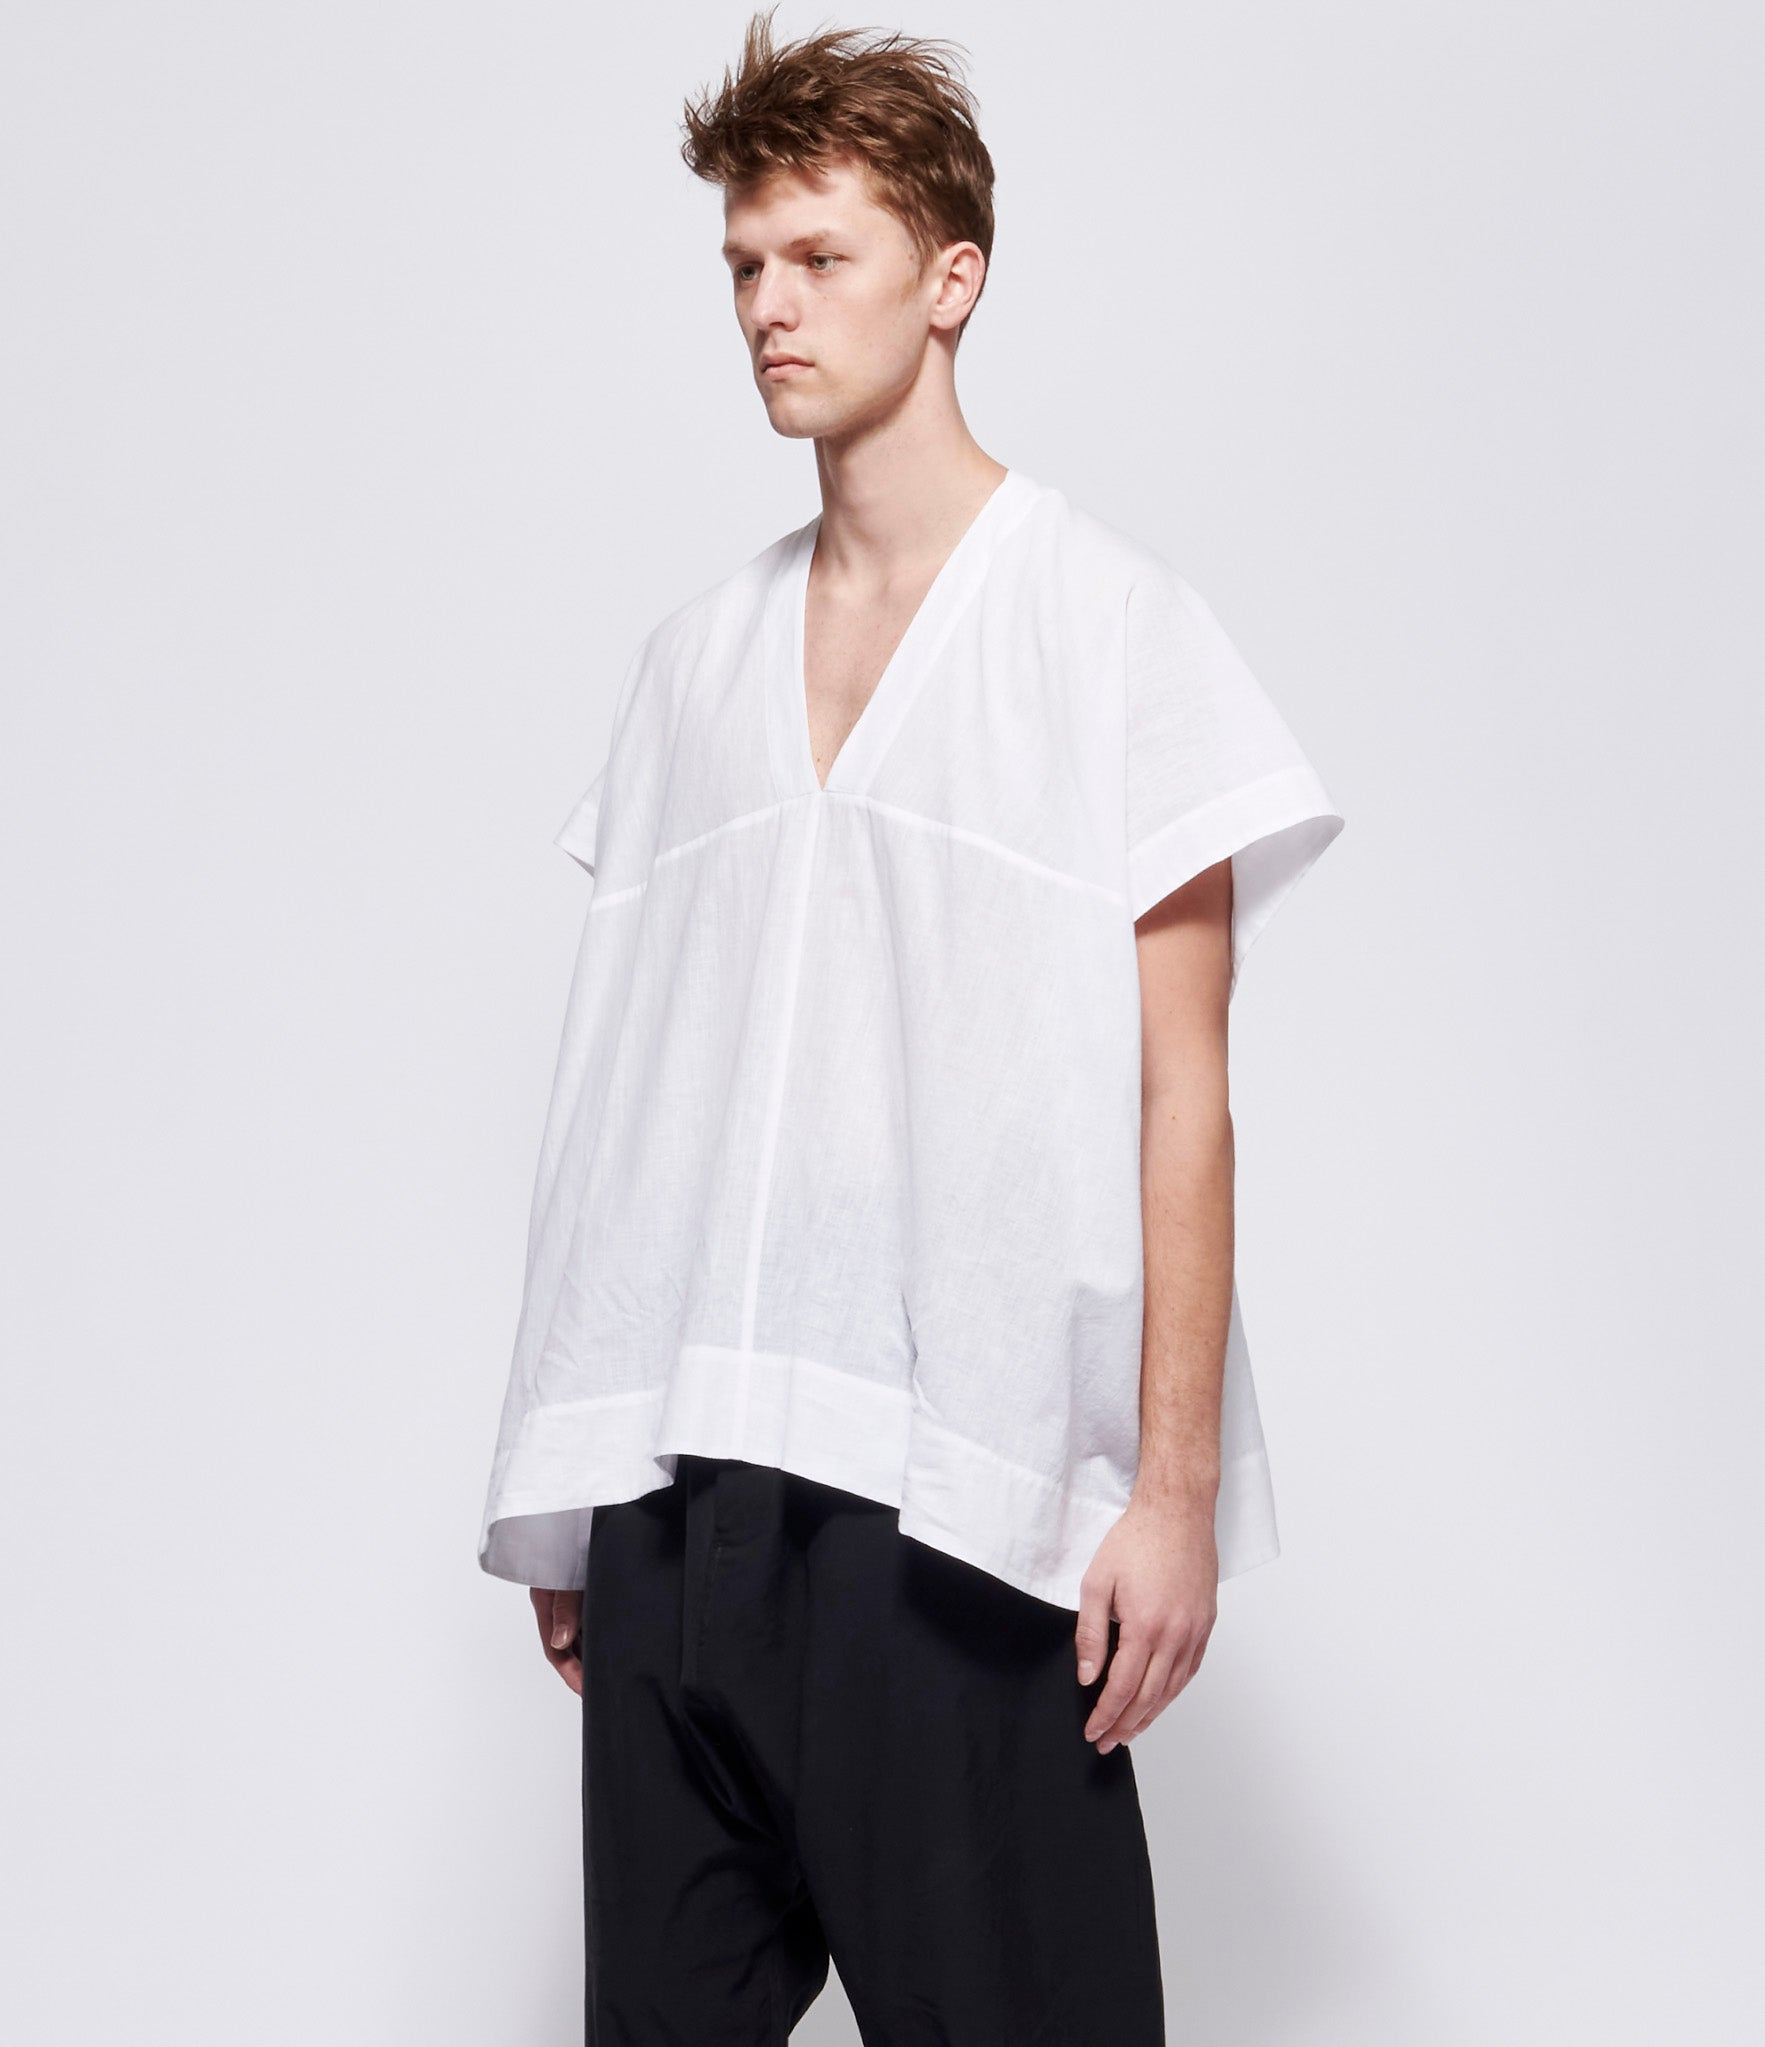 Jan Jan Van Essche #27 Off White Cotton Pullover Shirt